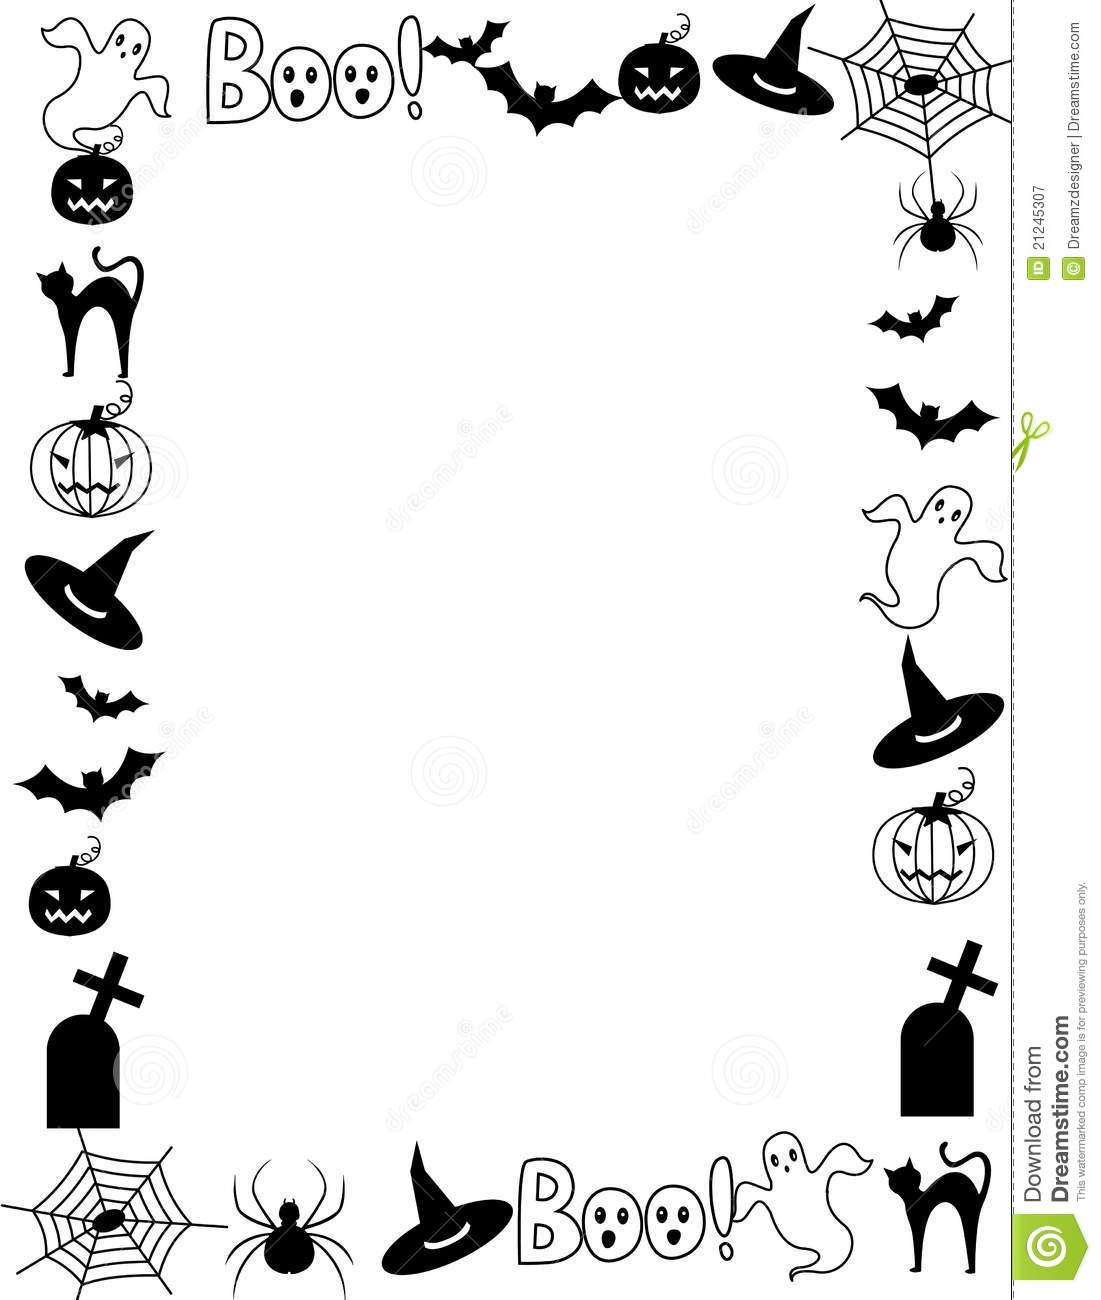 Royalty Free Stock Photography Halloween Frame Border Image21245307 on scary cemetery clip art